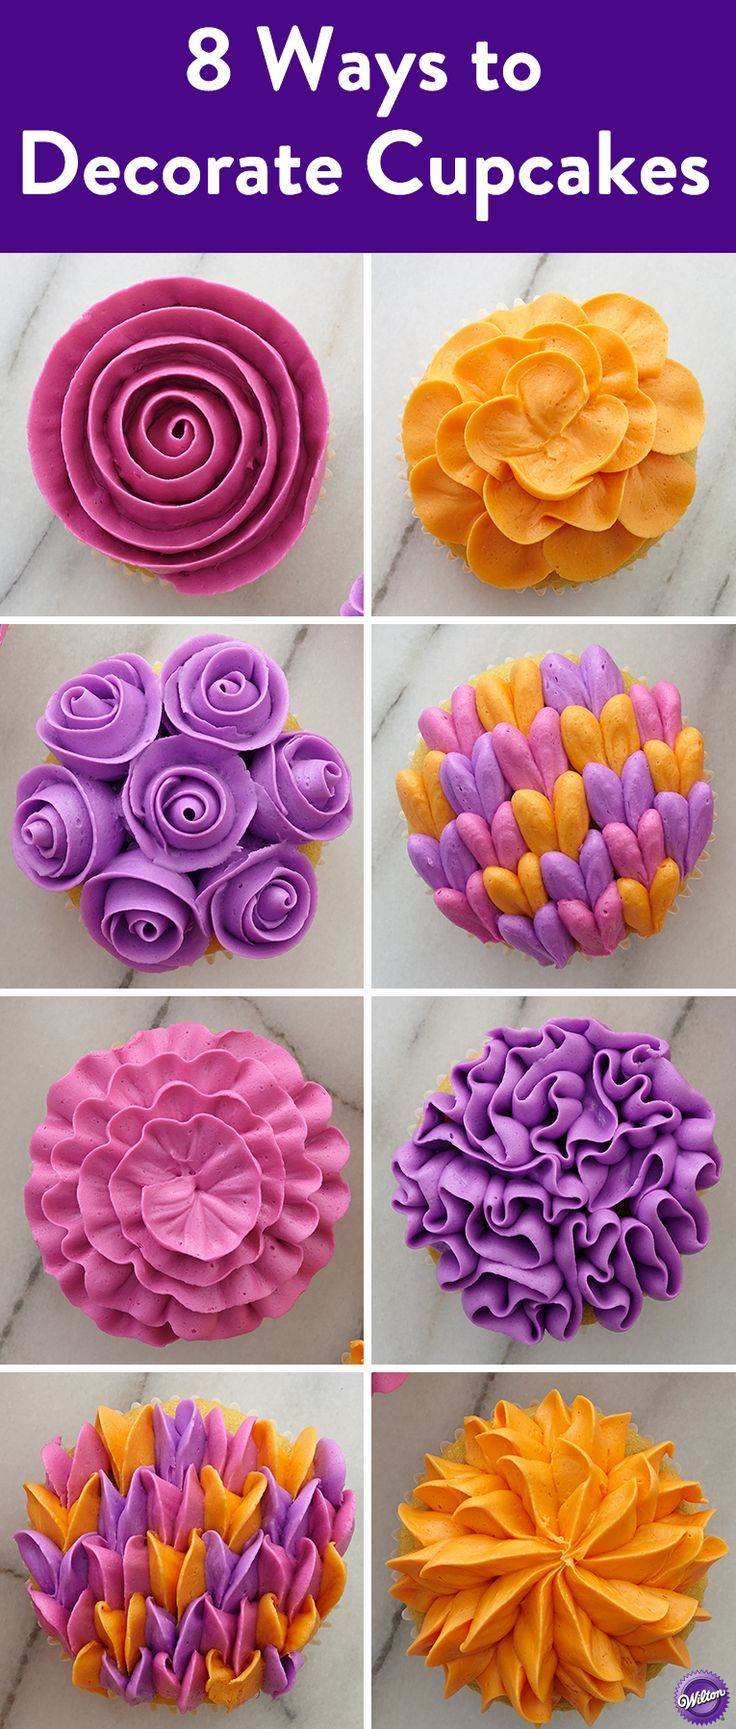 8 Ways to Decorate Cupcakes with Wilton Tip 104 - Let us count the ways we love icing tip 104. Try all 8 of easy cupcake decorating technique—each done using just one petal tip. Keep petal tip no. 104 handy to try all of these impressive flower cupcakes, like the ribbon rose and ruffled flower design and more. Cake decorating ideas www.wilton.com/home